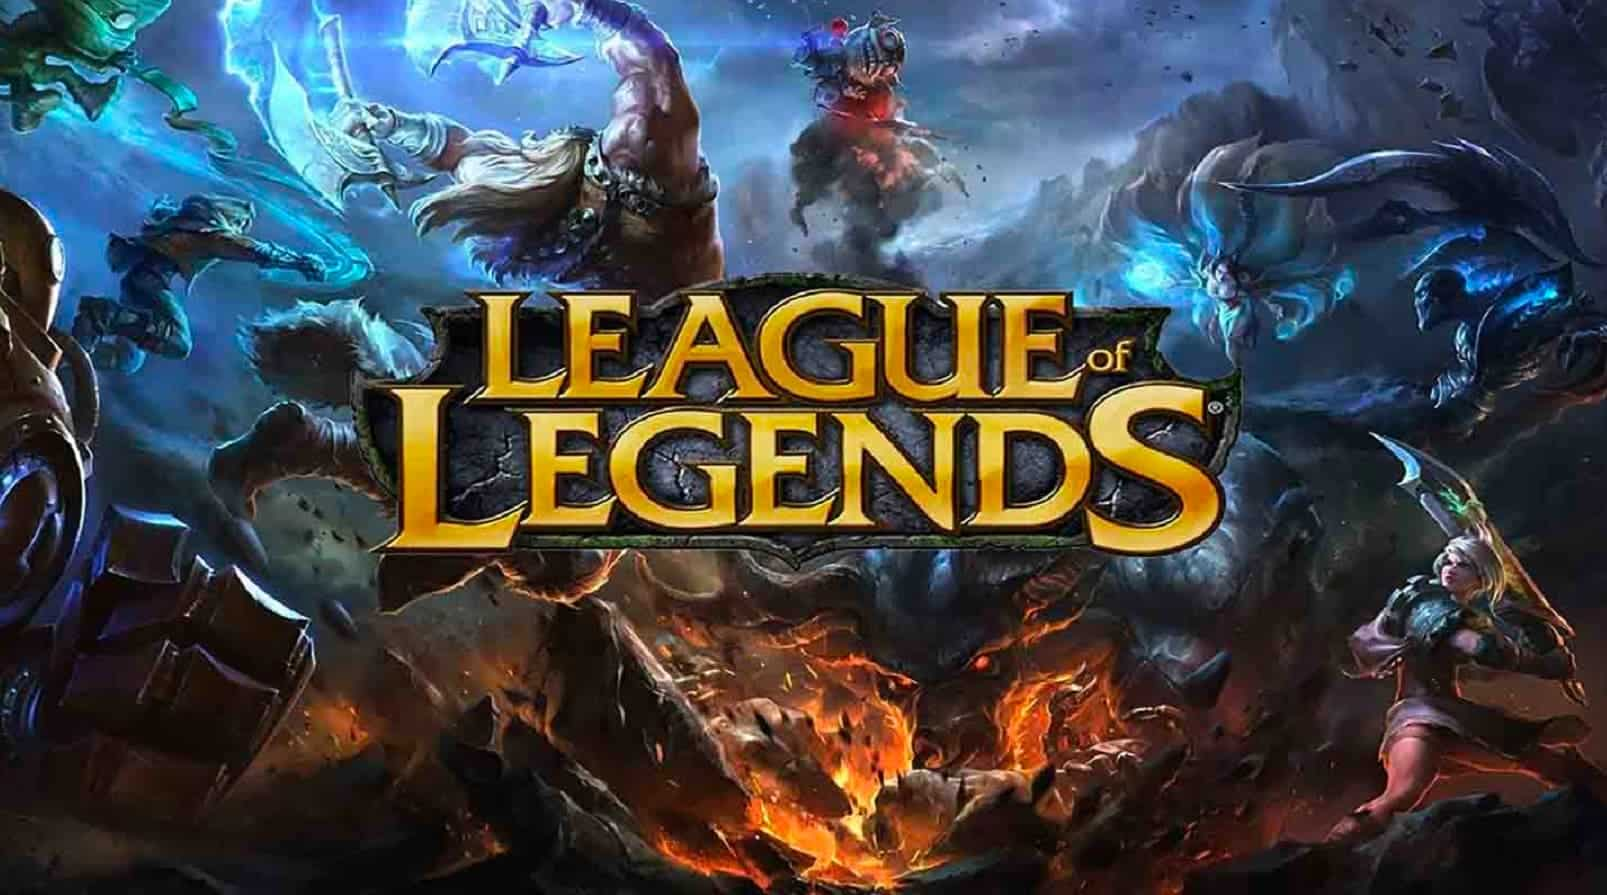 Best streaming games - League of legends